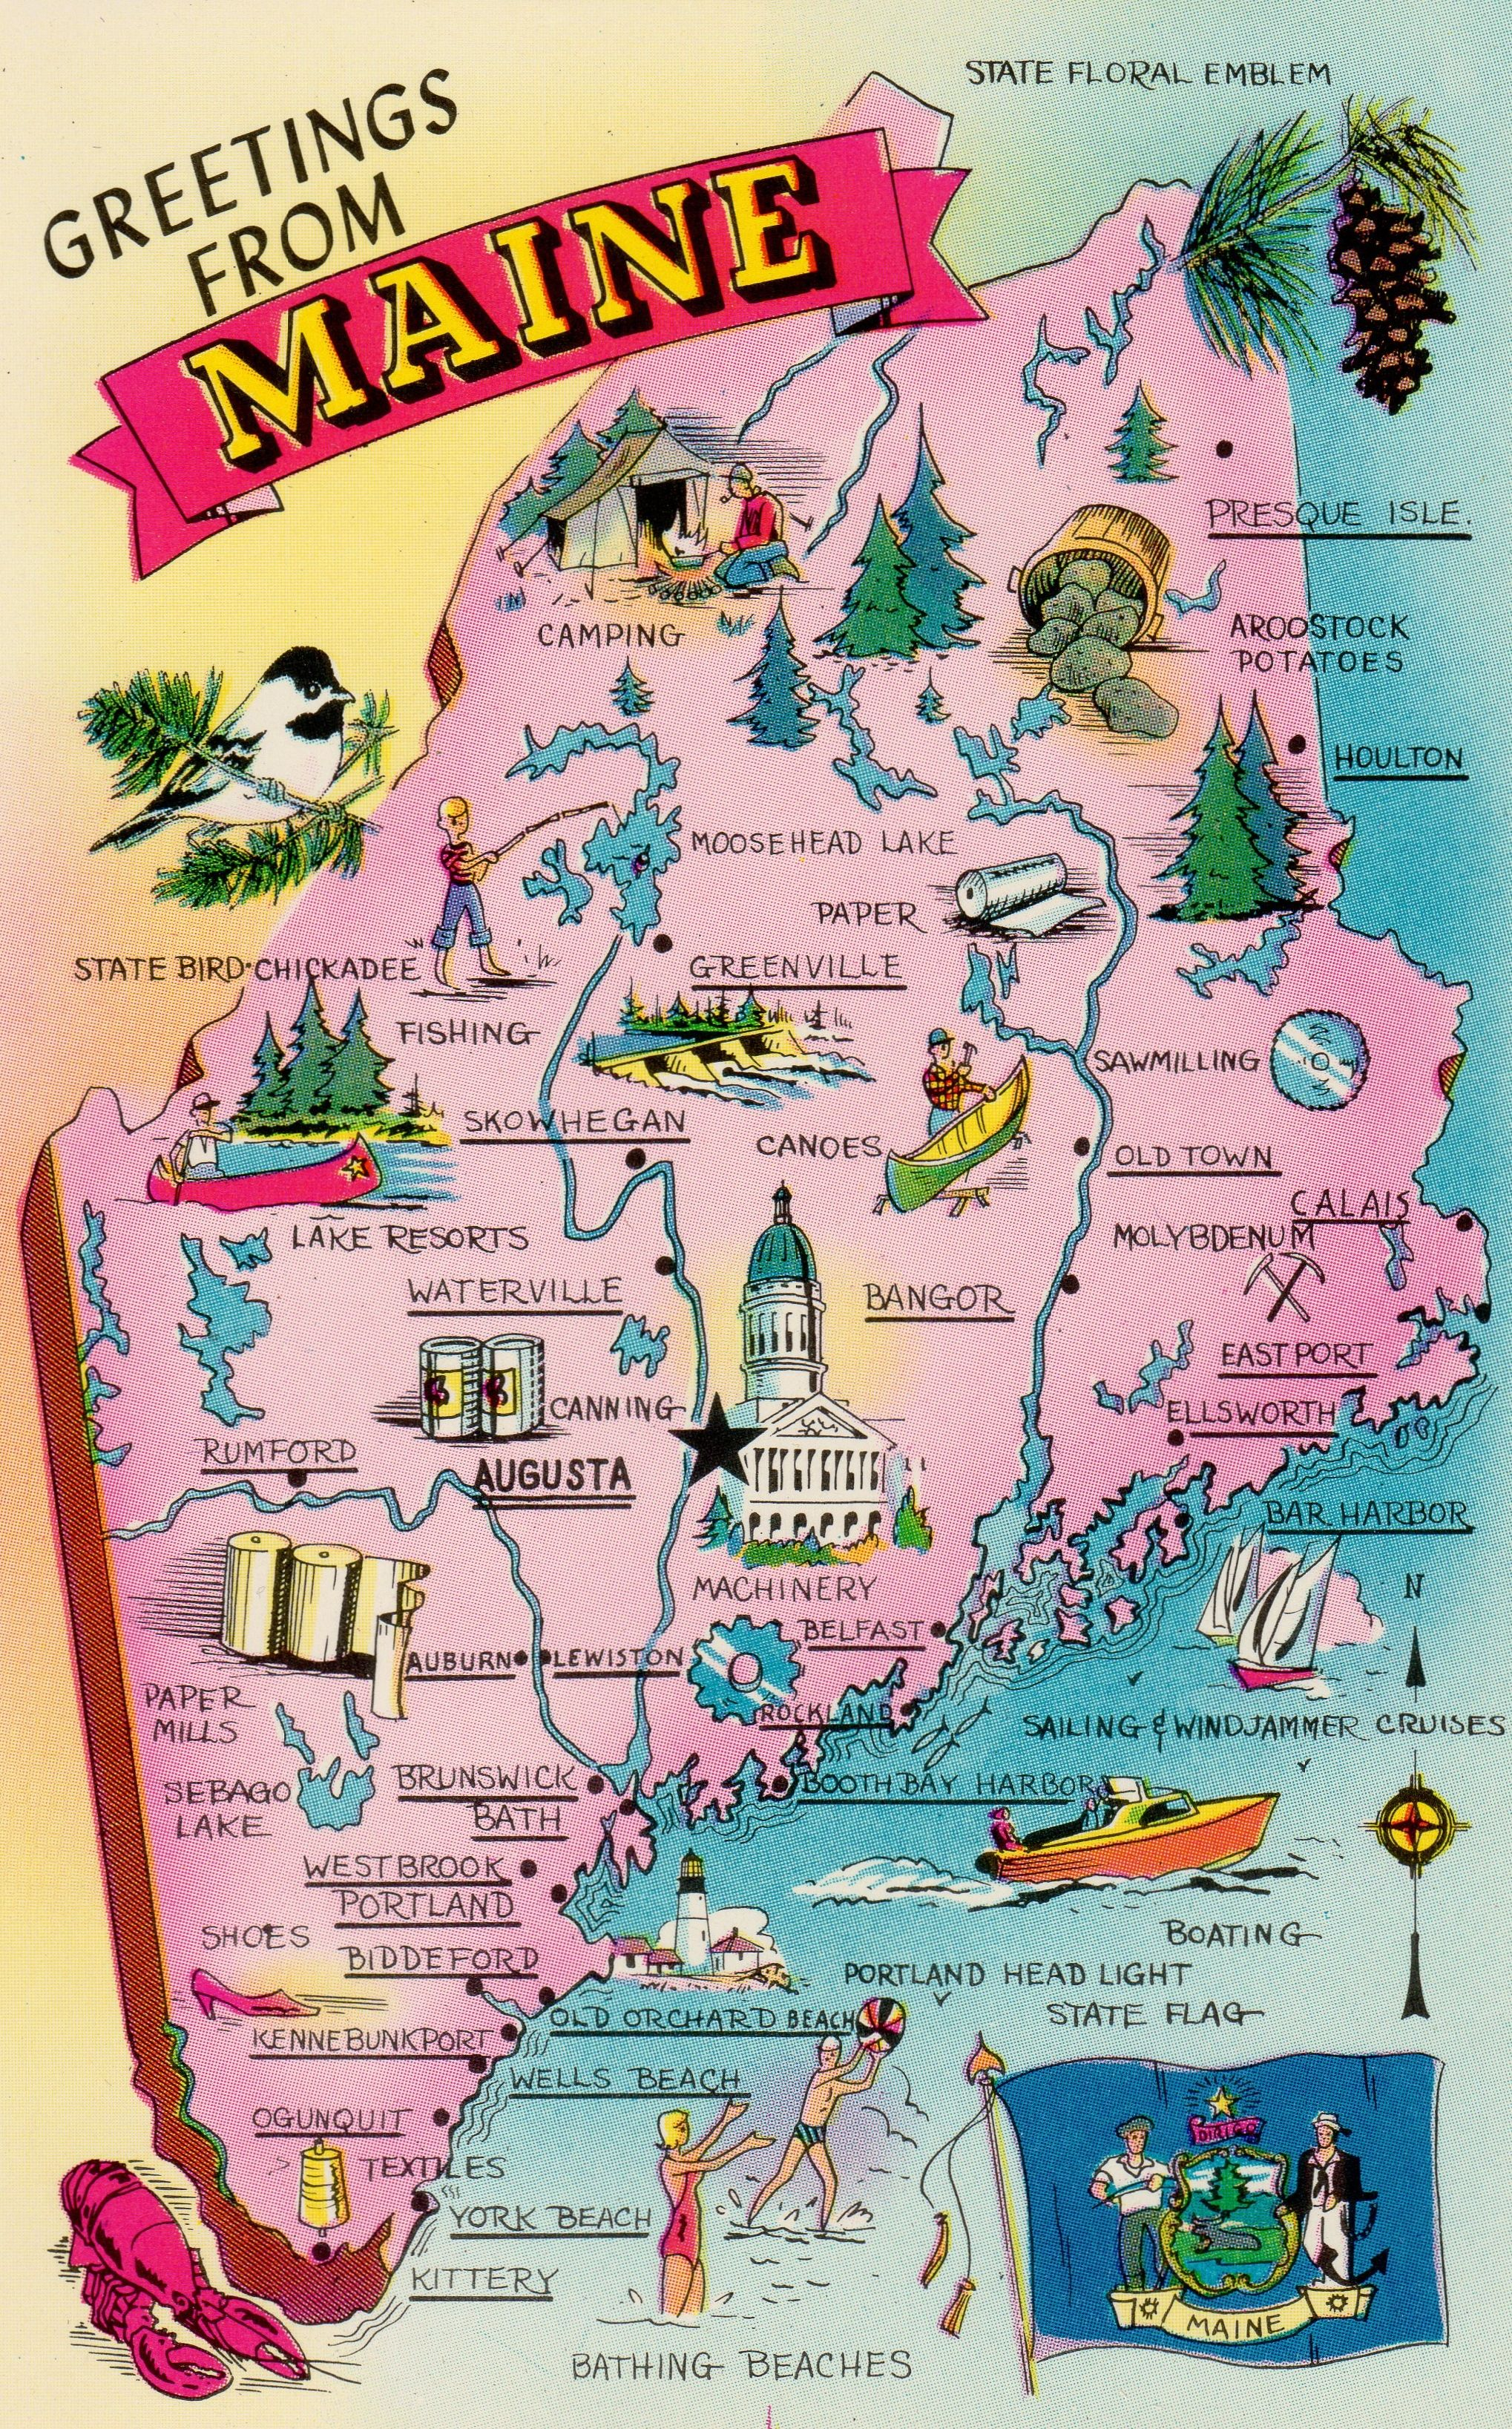 Driving Map Of New England For Fall Colors Fall Foliage In New - Maine state usa map